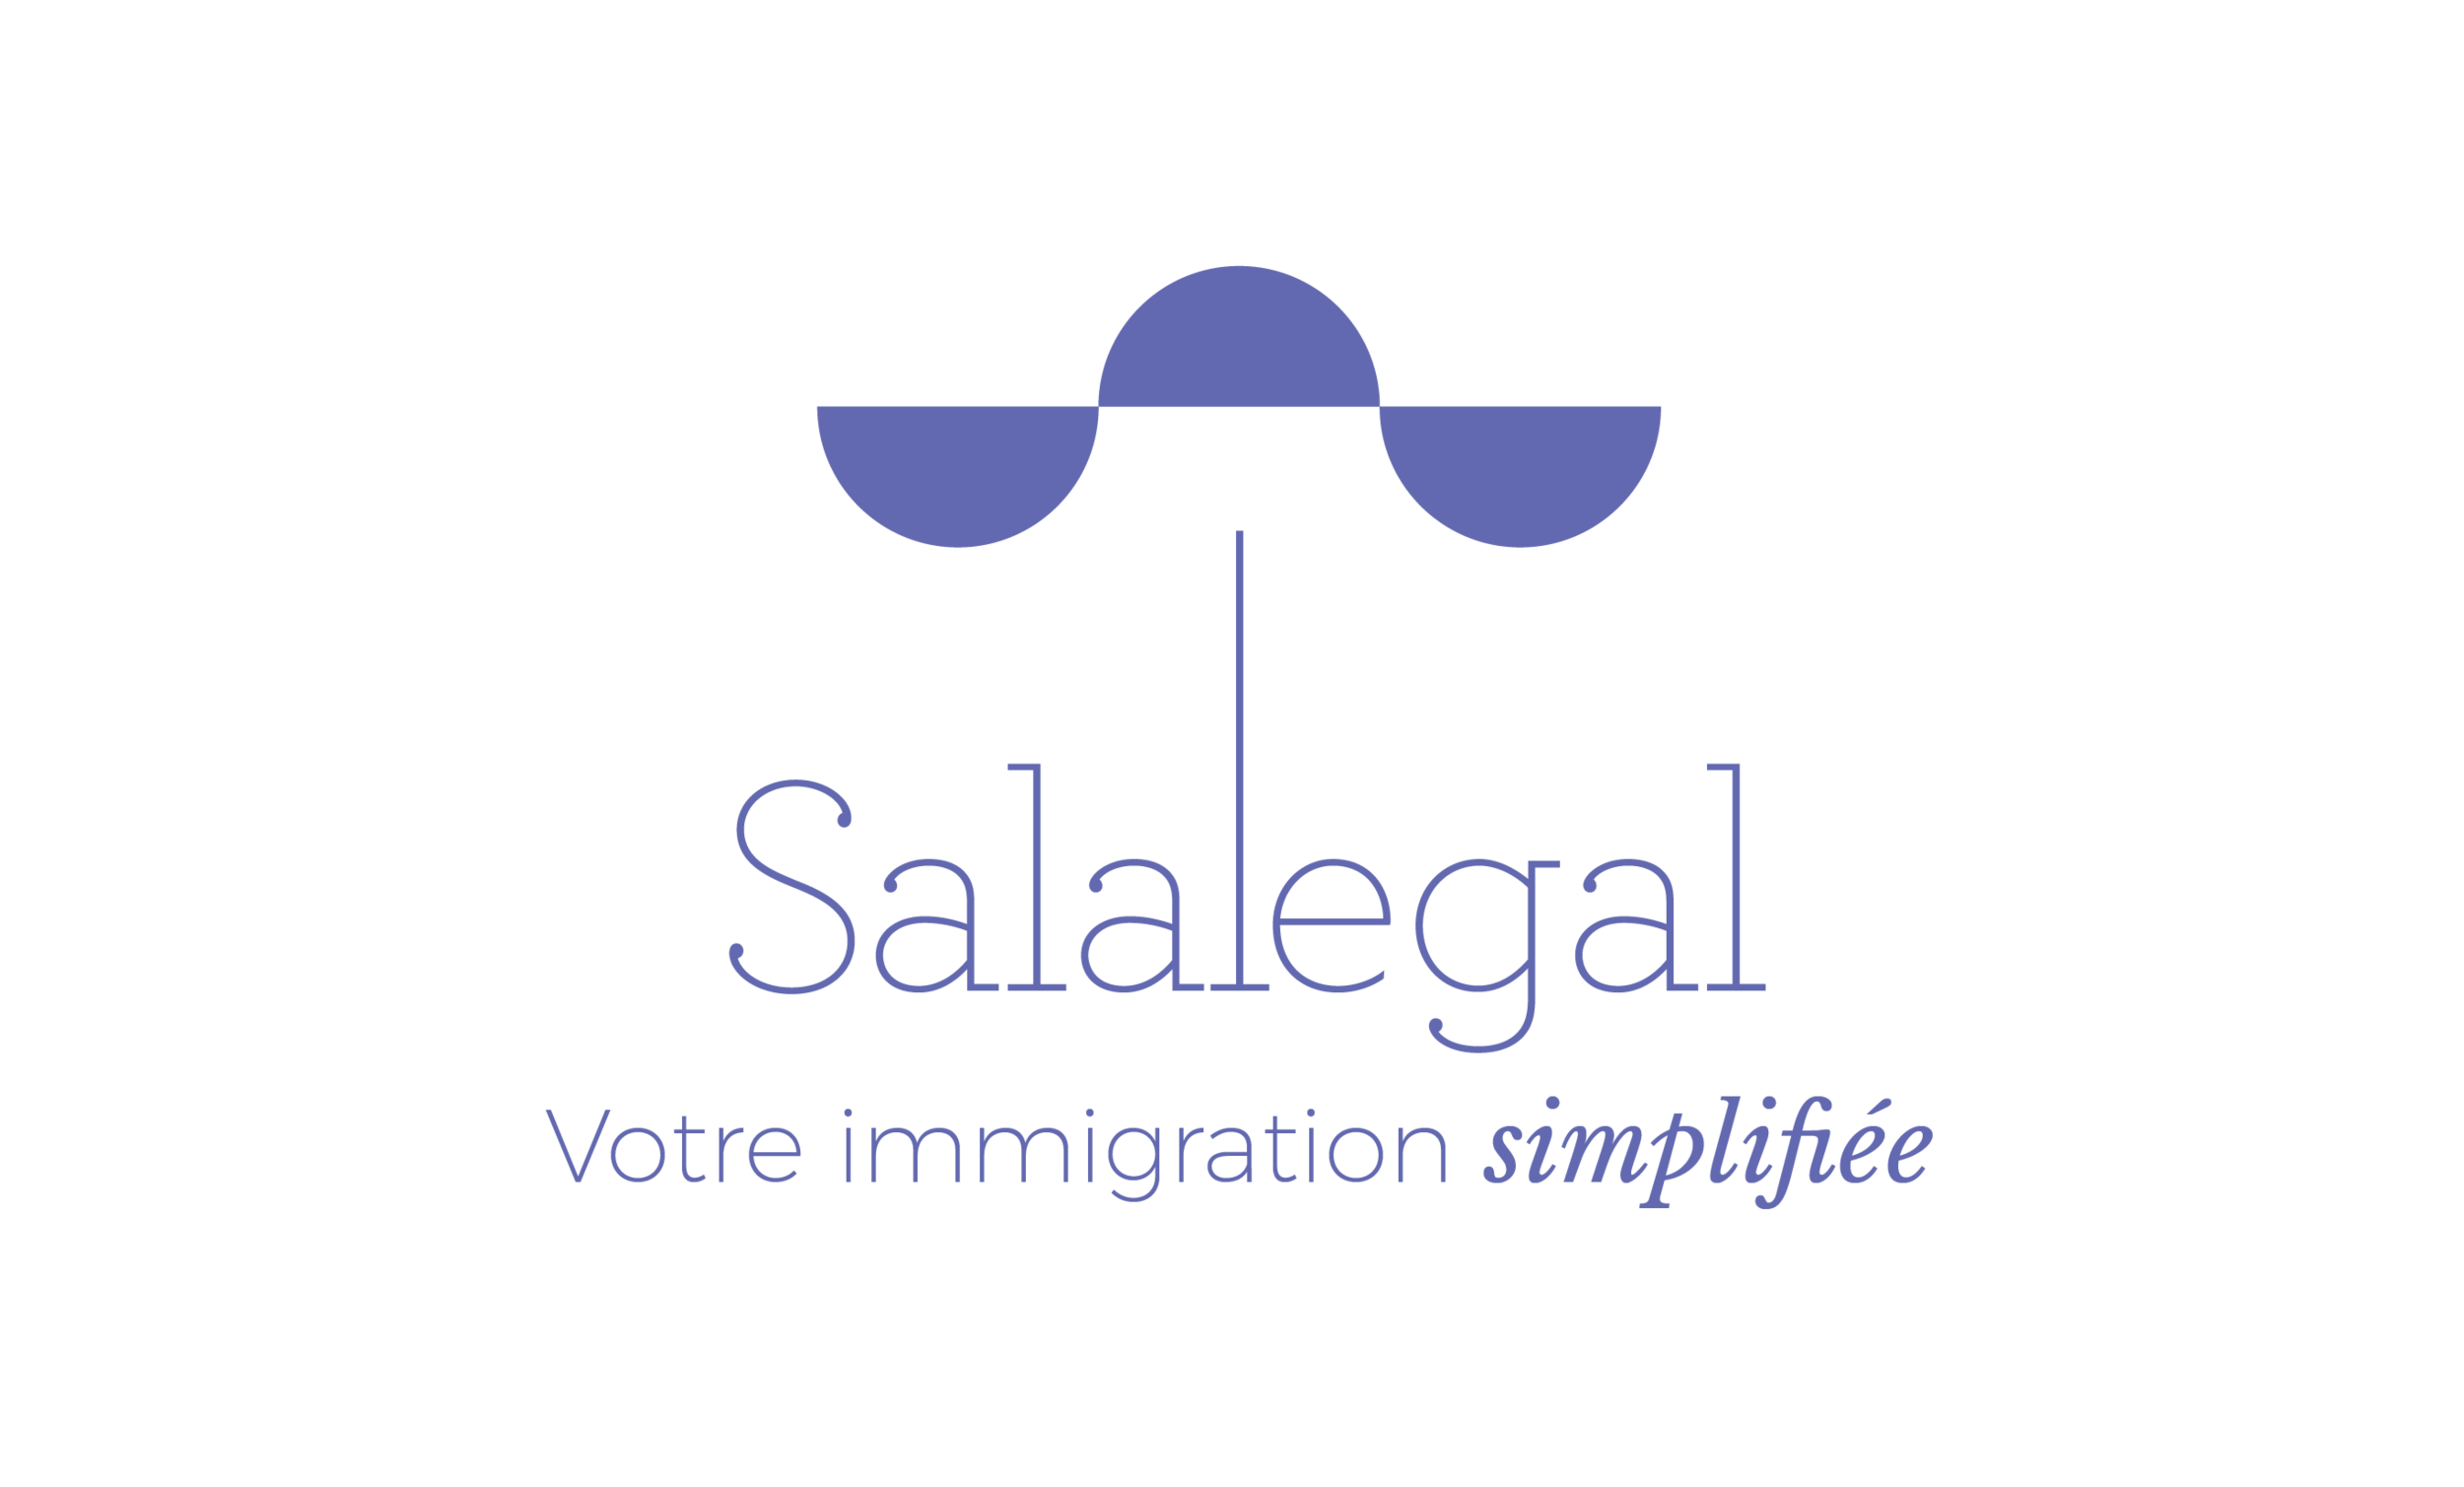 LOGO SALALEGAL-PNG-SAL_17_003_Carte copy 3@16x-3.png